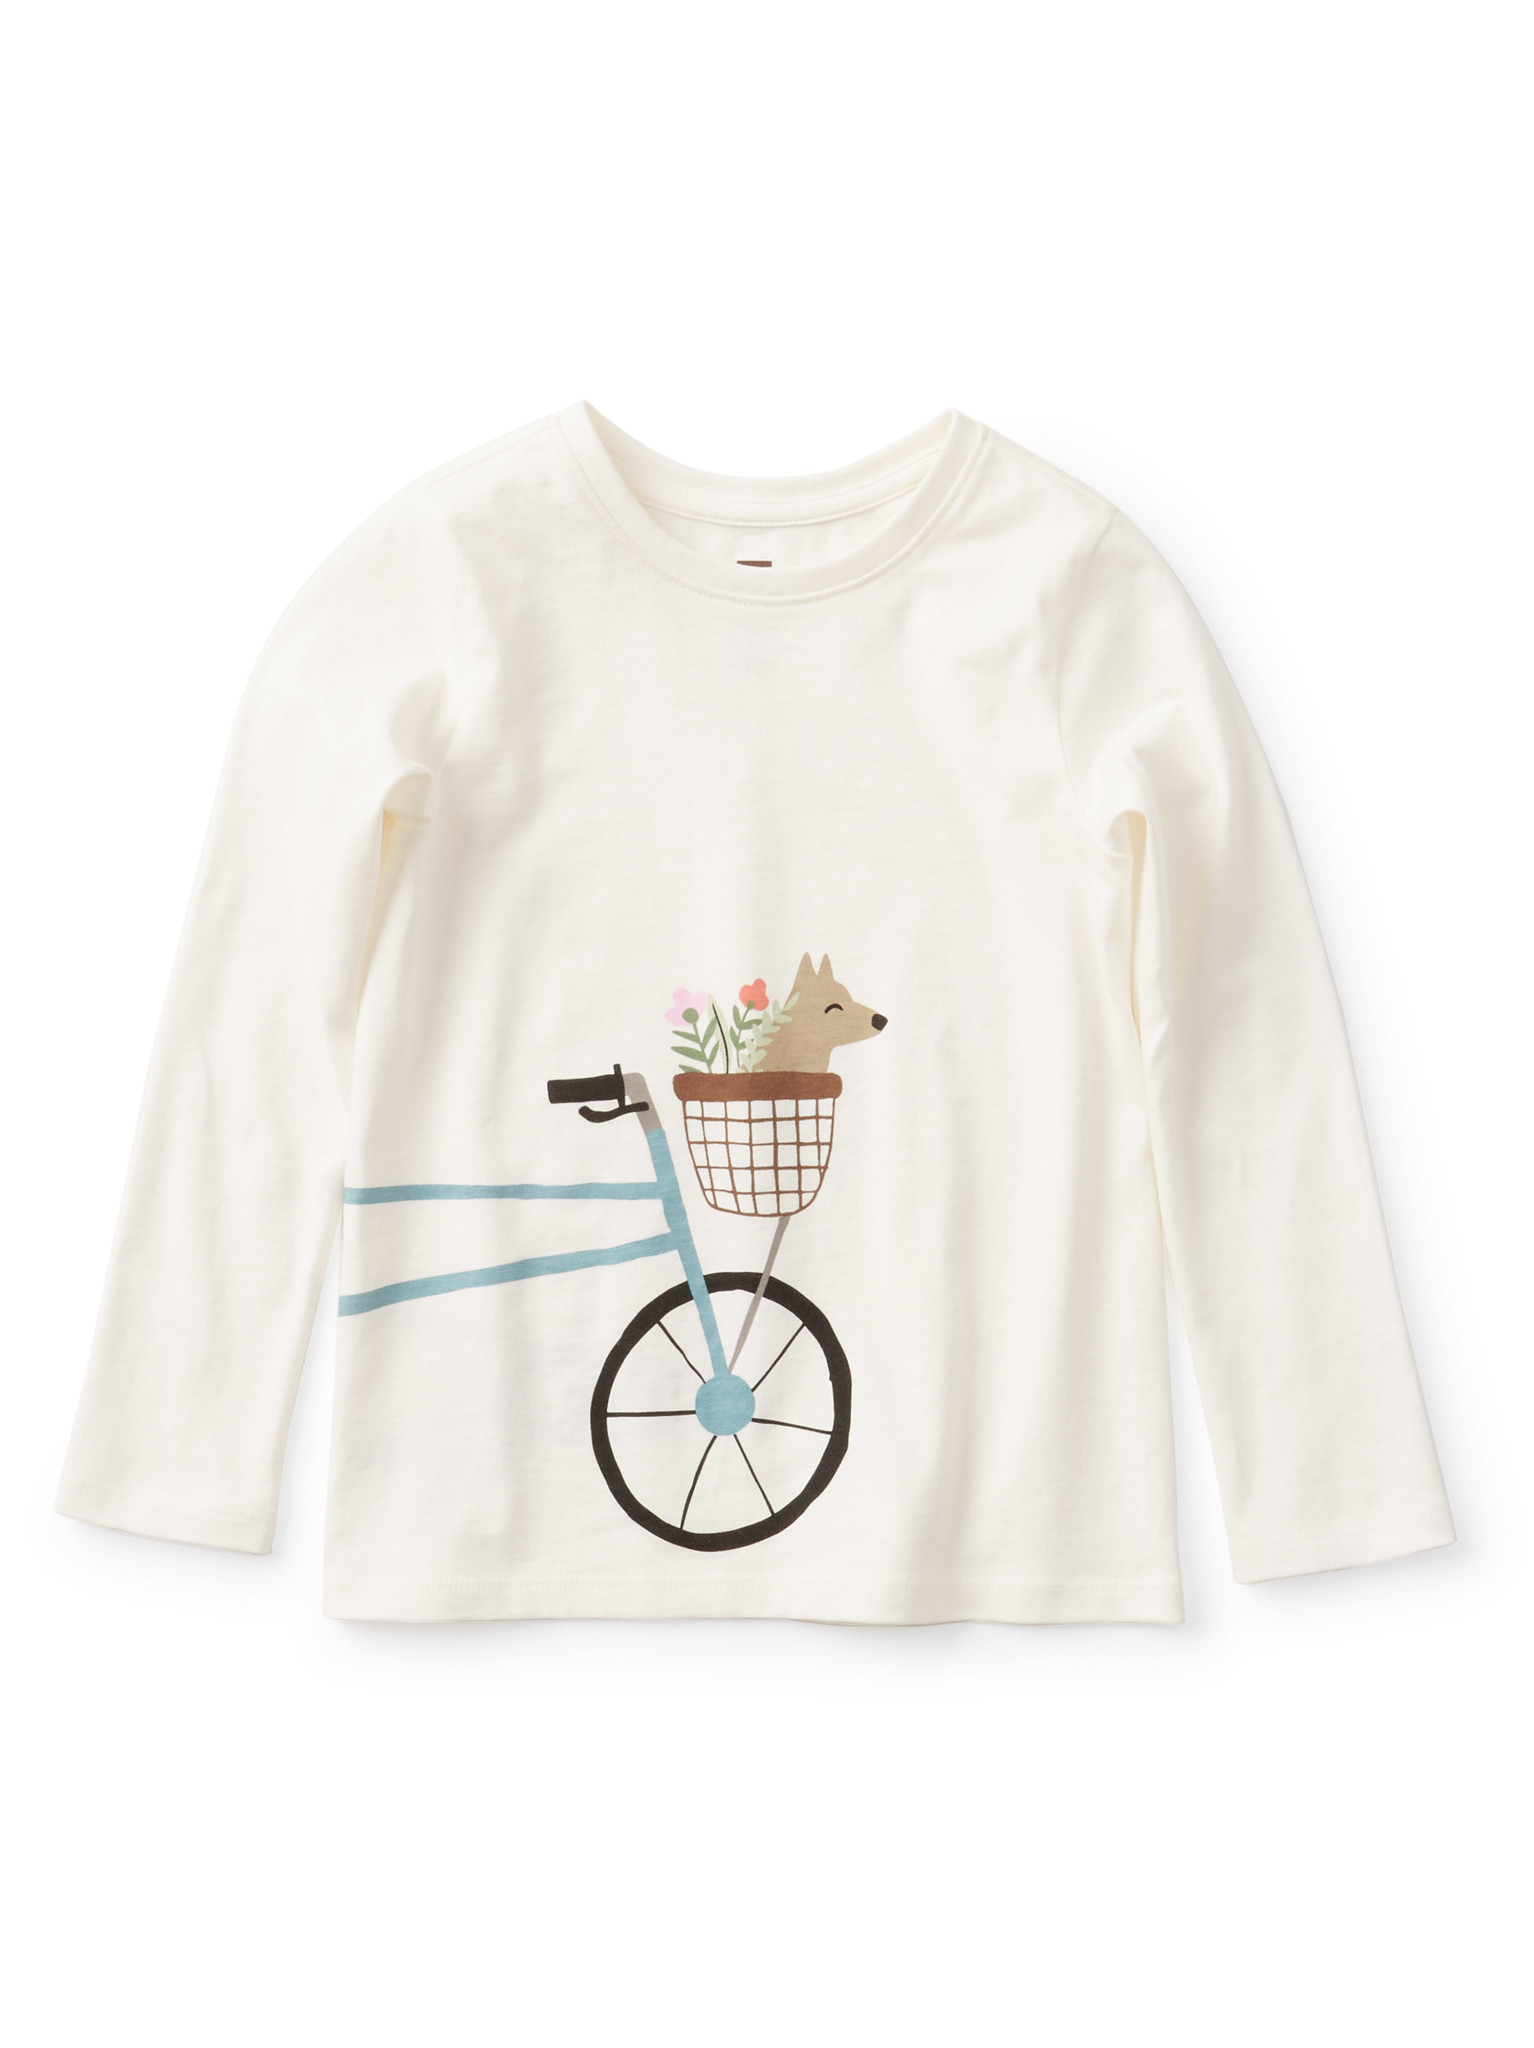 Tea Collection Bicycle Graphic Tee